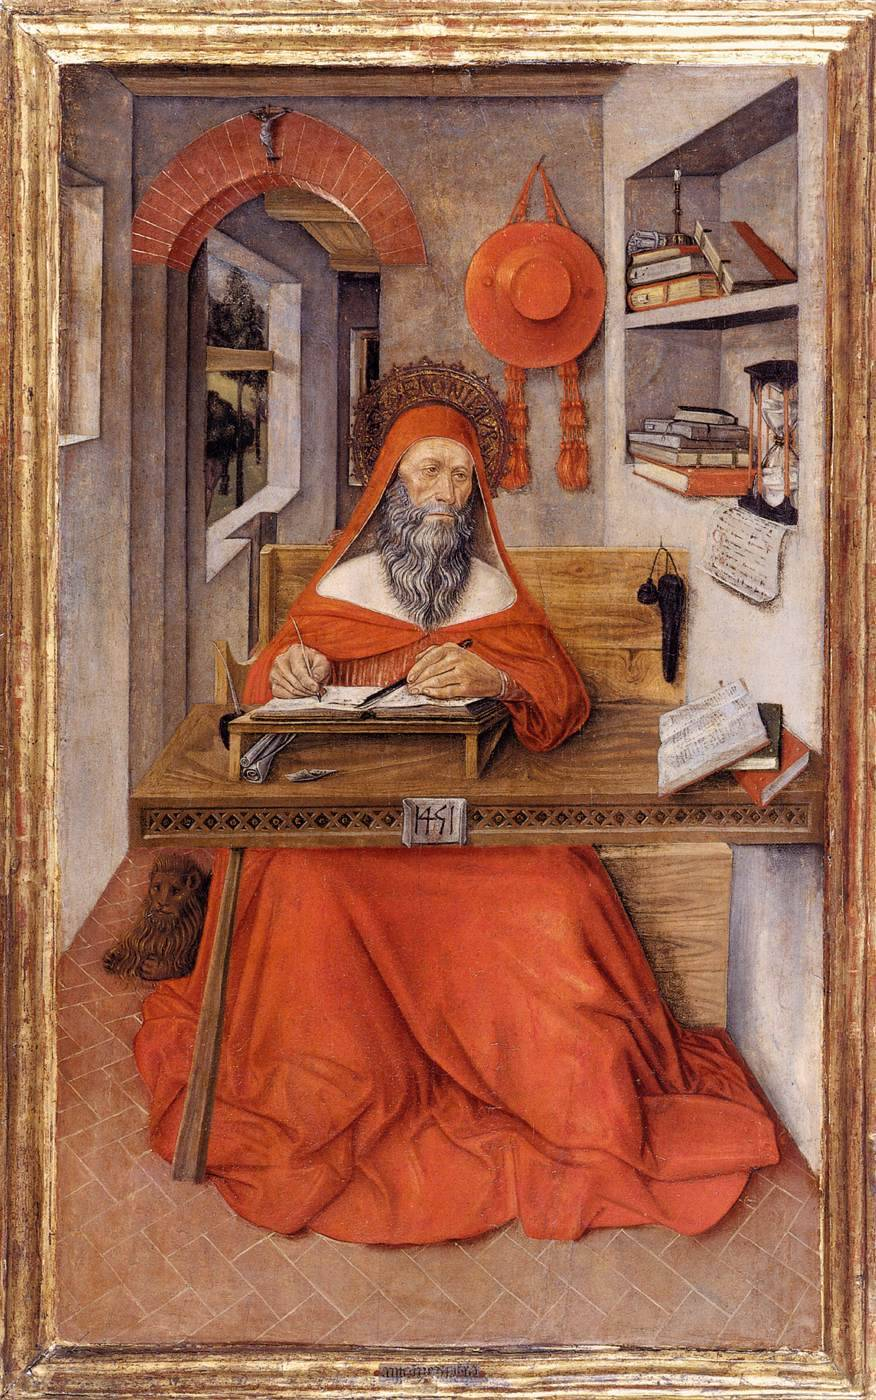 ANTONIO DA FABRIANO [Italian Early Renaissance, known 1451-1486] St Jerome in His Study1451Tempera on wood, 88 x 52 cmWalters Art Museum, Baltimore